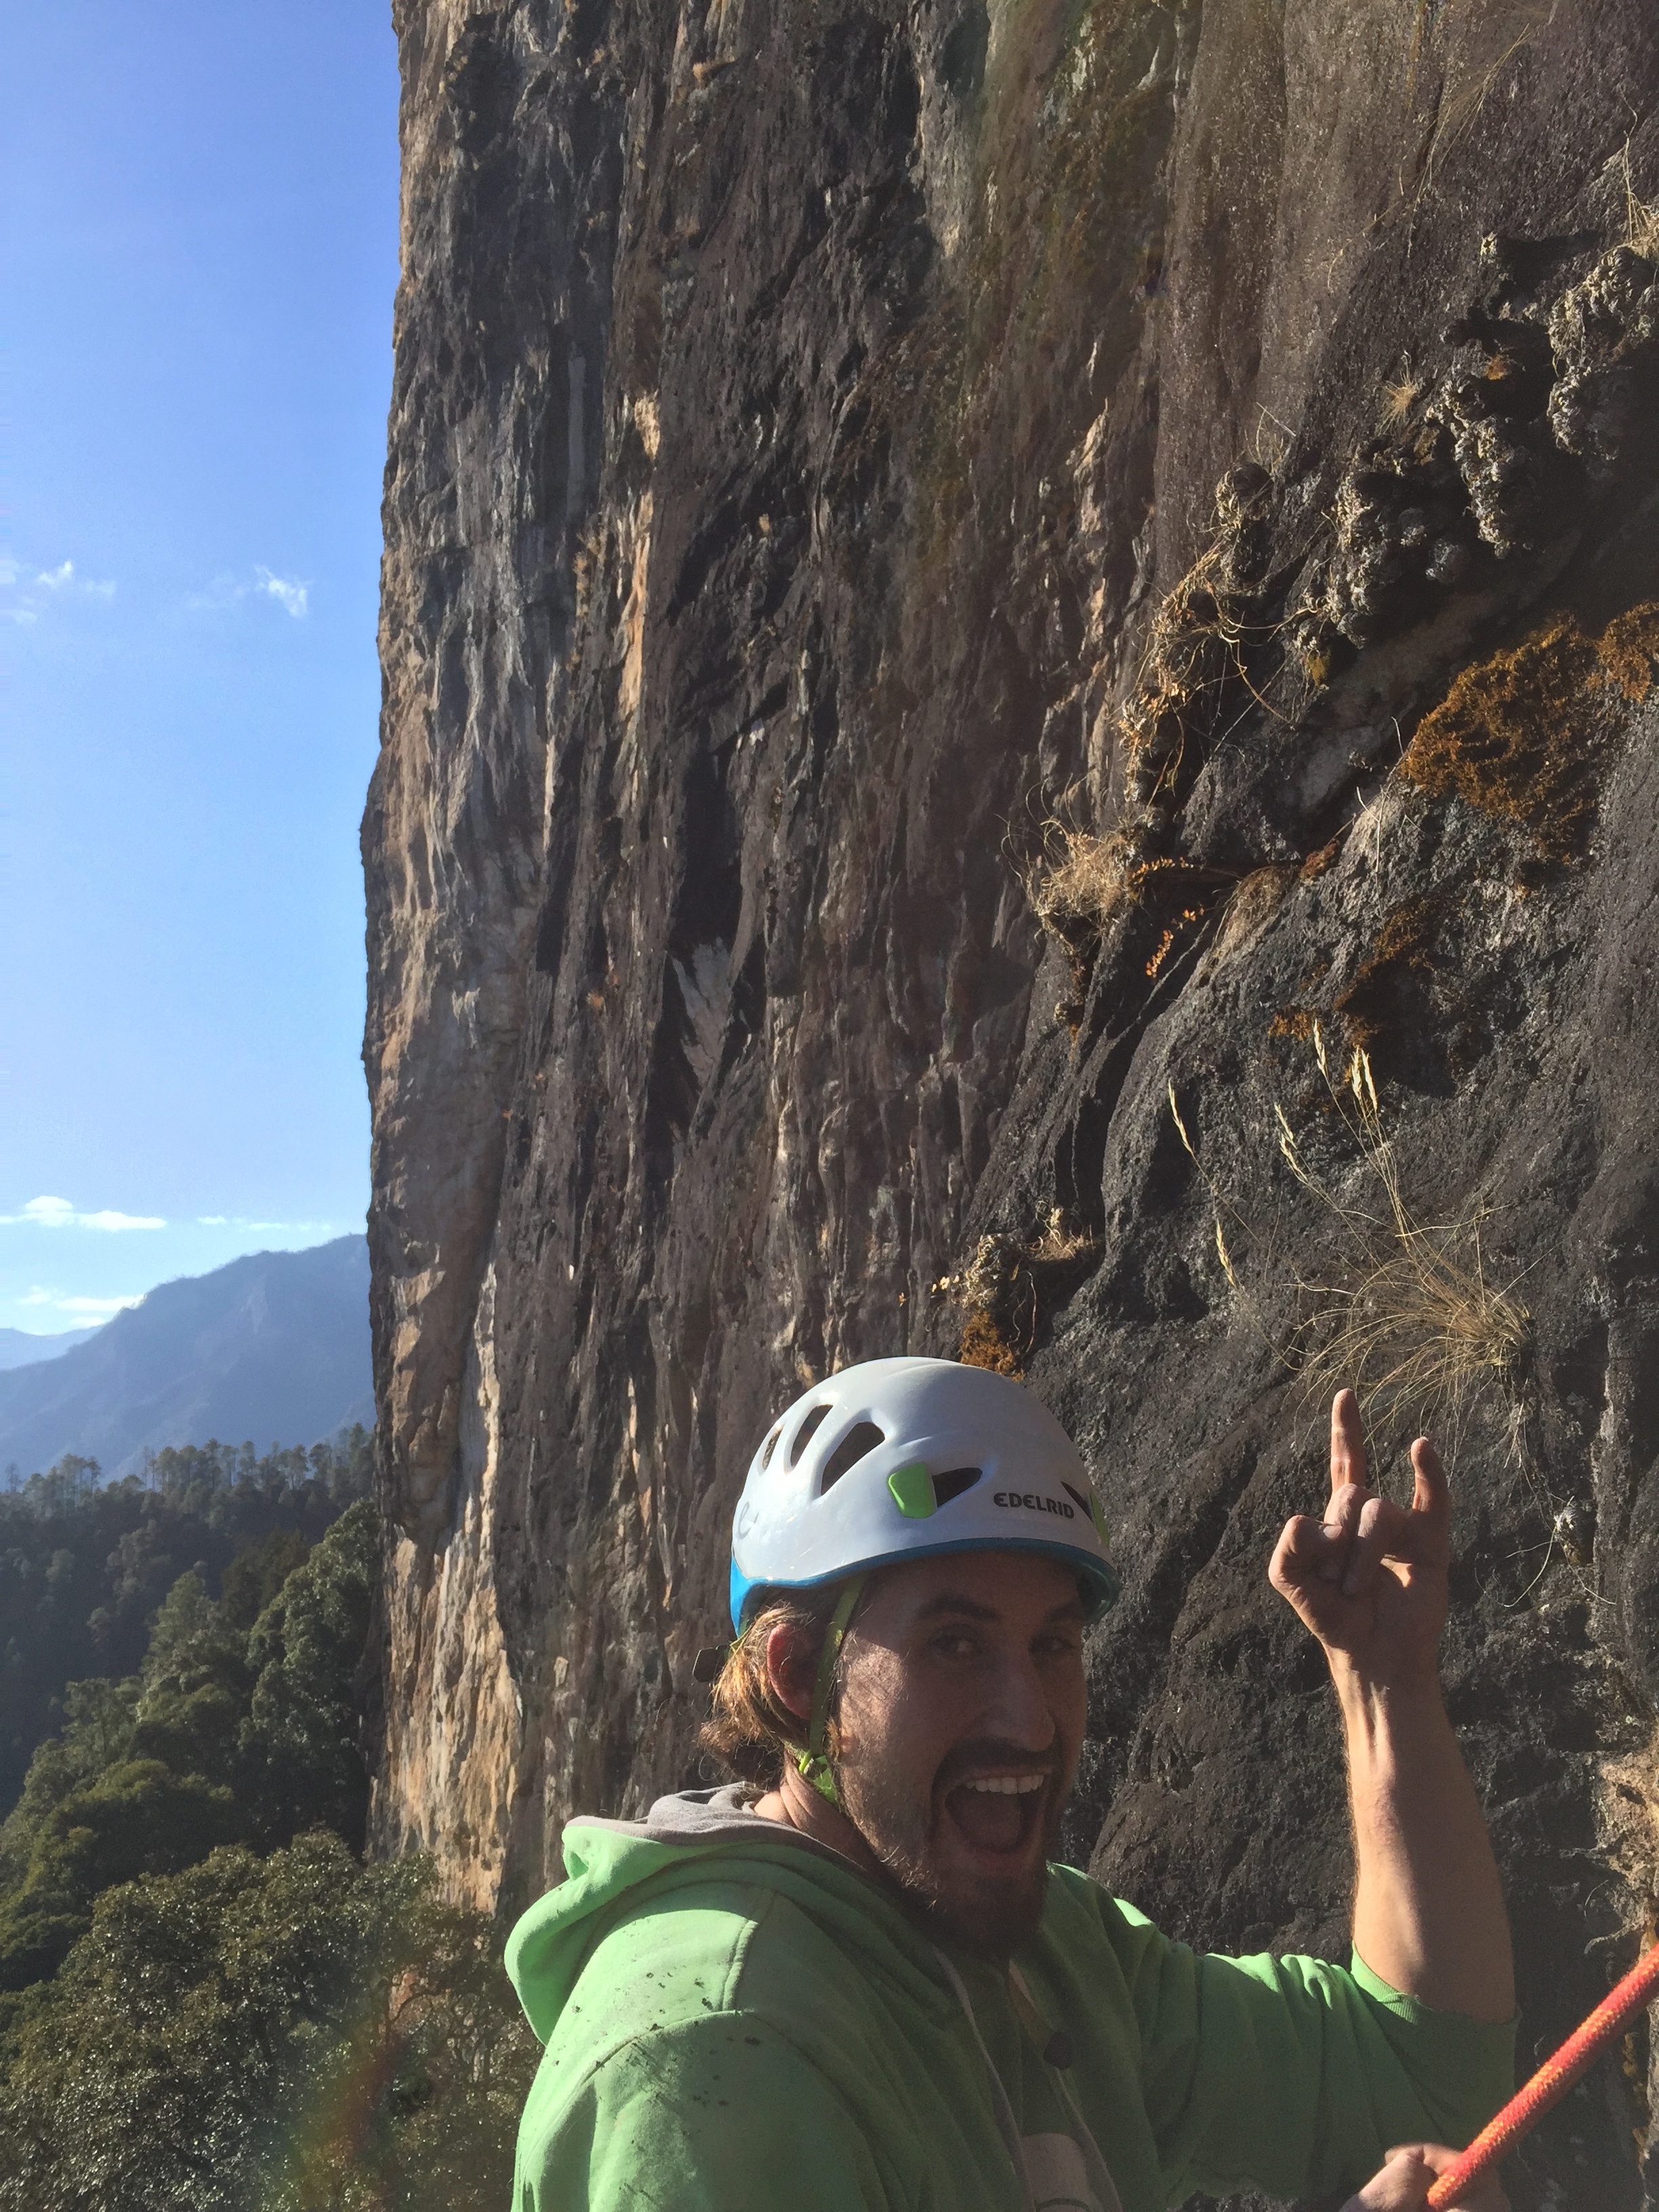 Dane shows his stoke for the enormous amount of climbable rock on the Baiyansi massif.